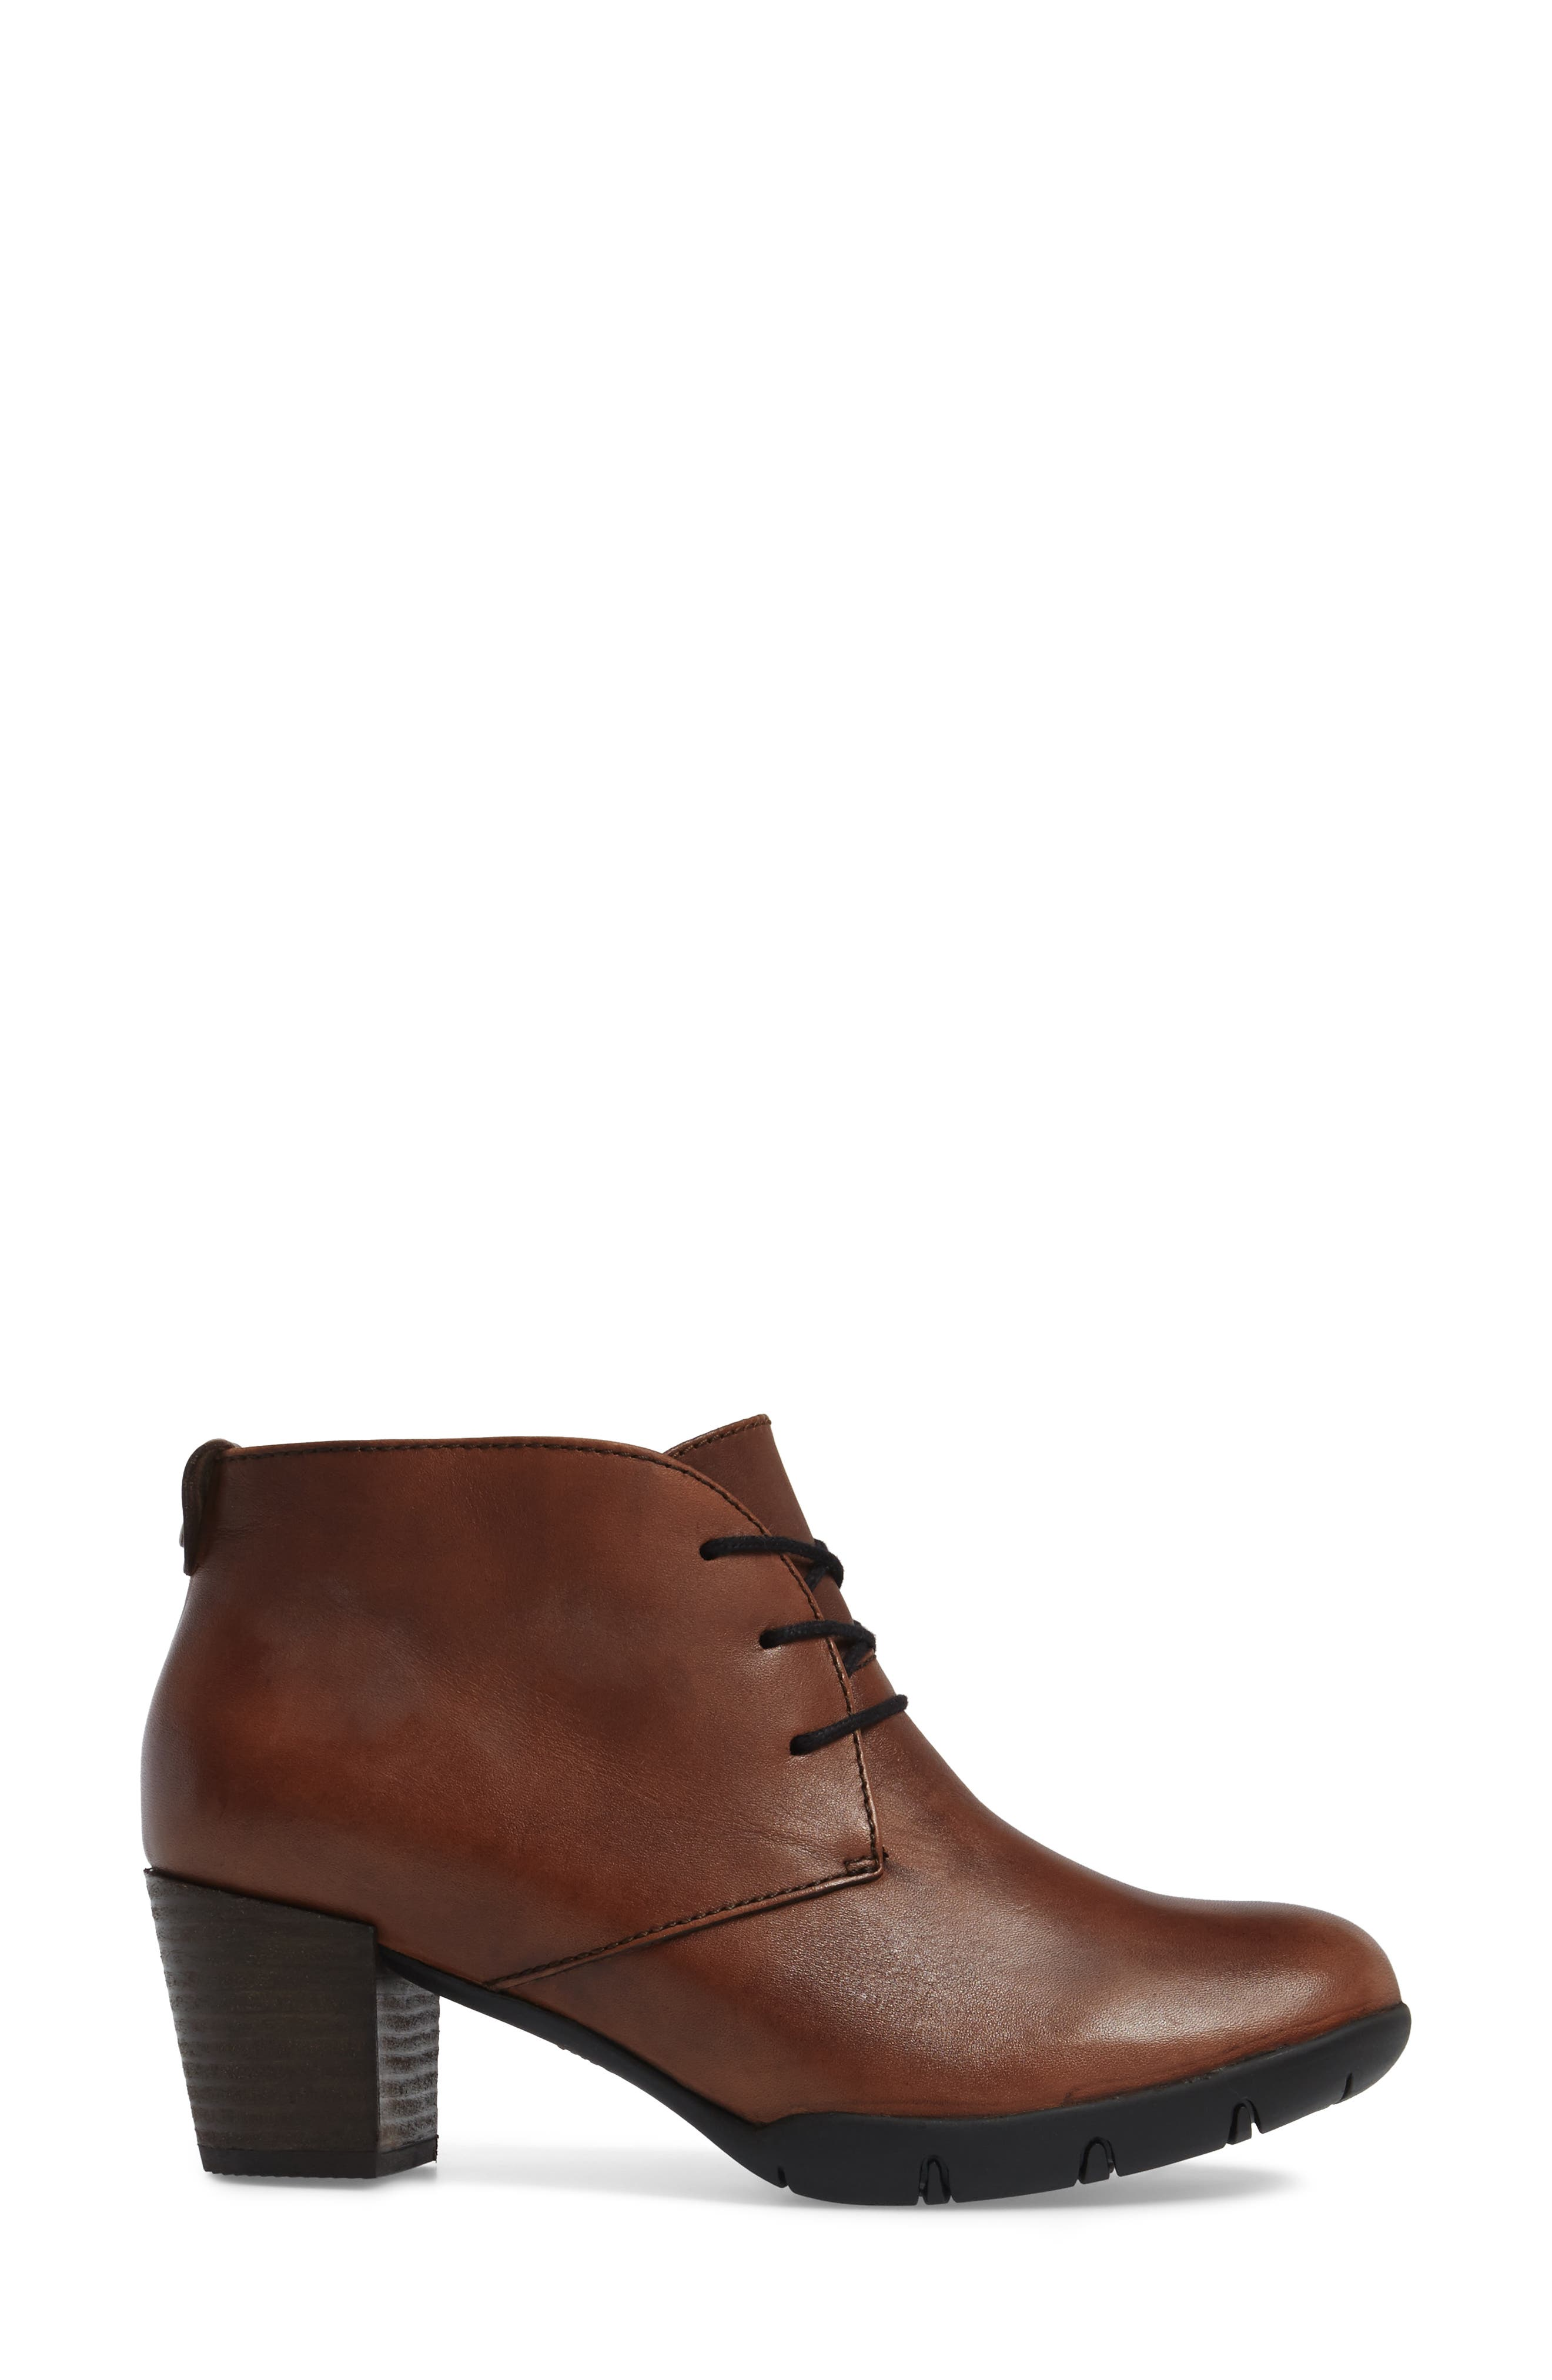 Bighorn Bootie,                             Alternate thumbnail 3, color,                             COGNAC LEATHER